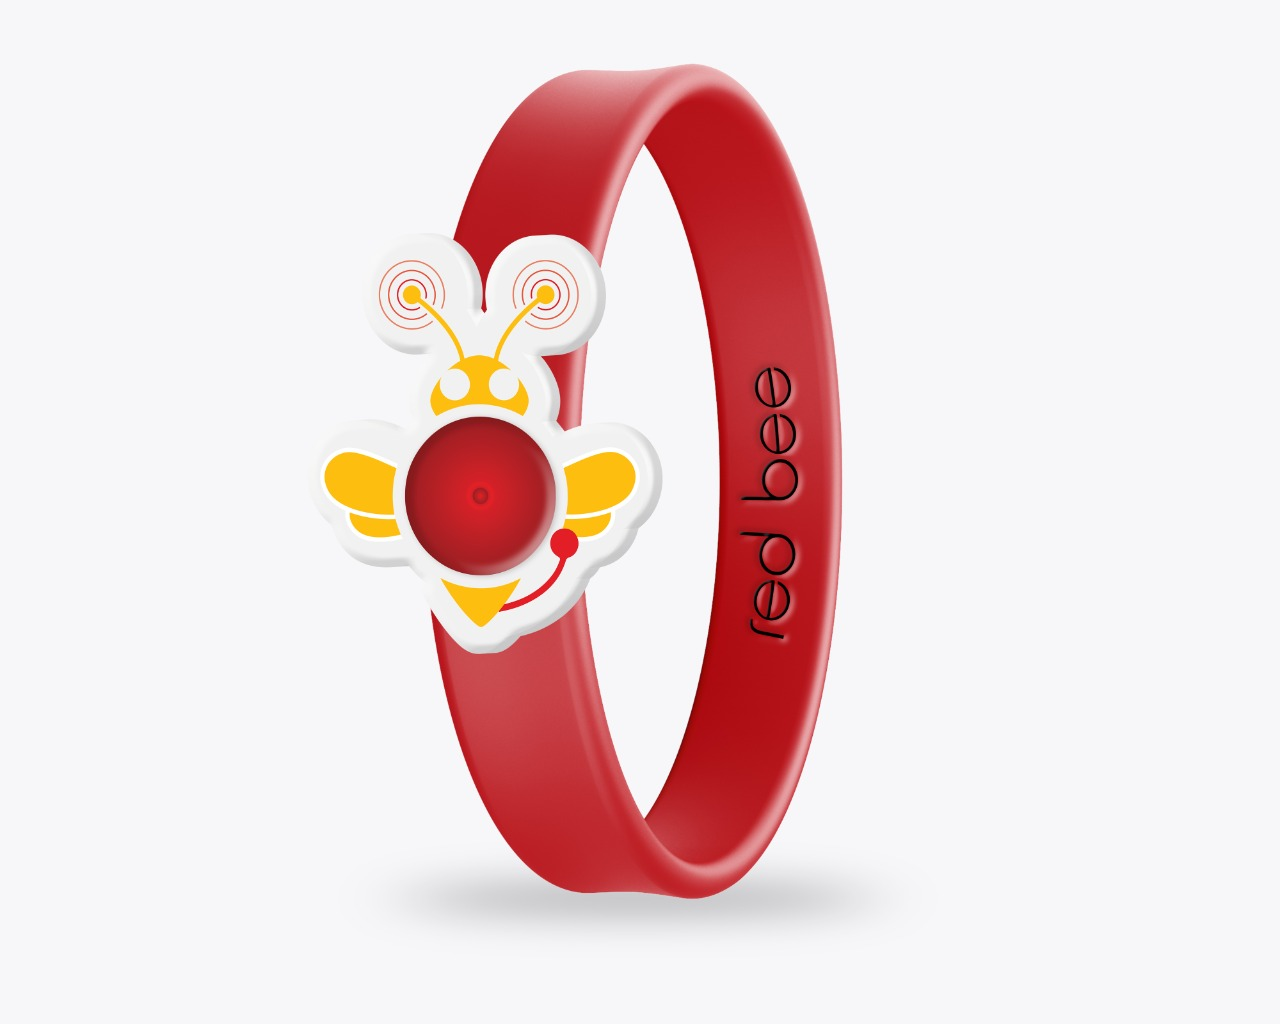 The first prototype version of The Red Bee anti-bullying wristband